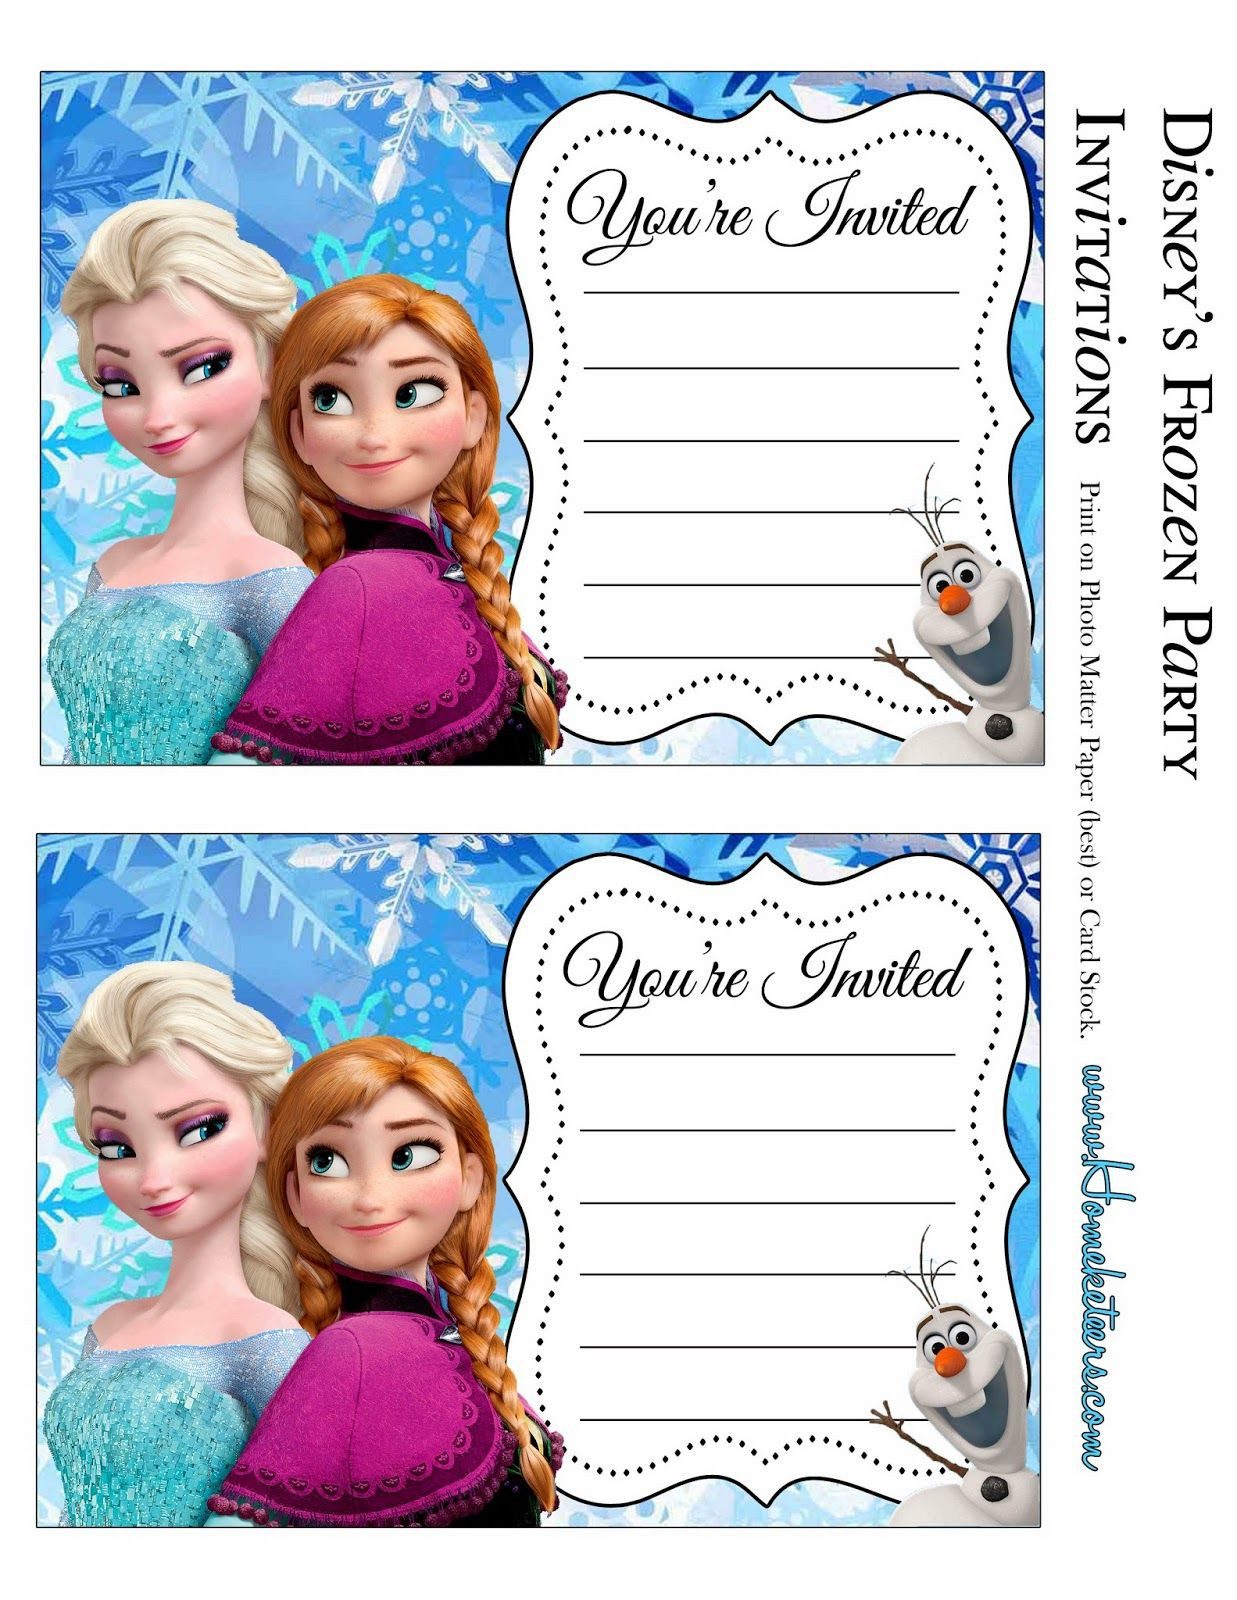 Frozen Printable Invitation Frozen Party Free Printable Invitations